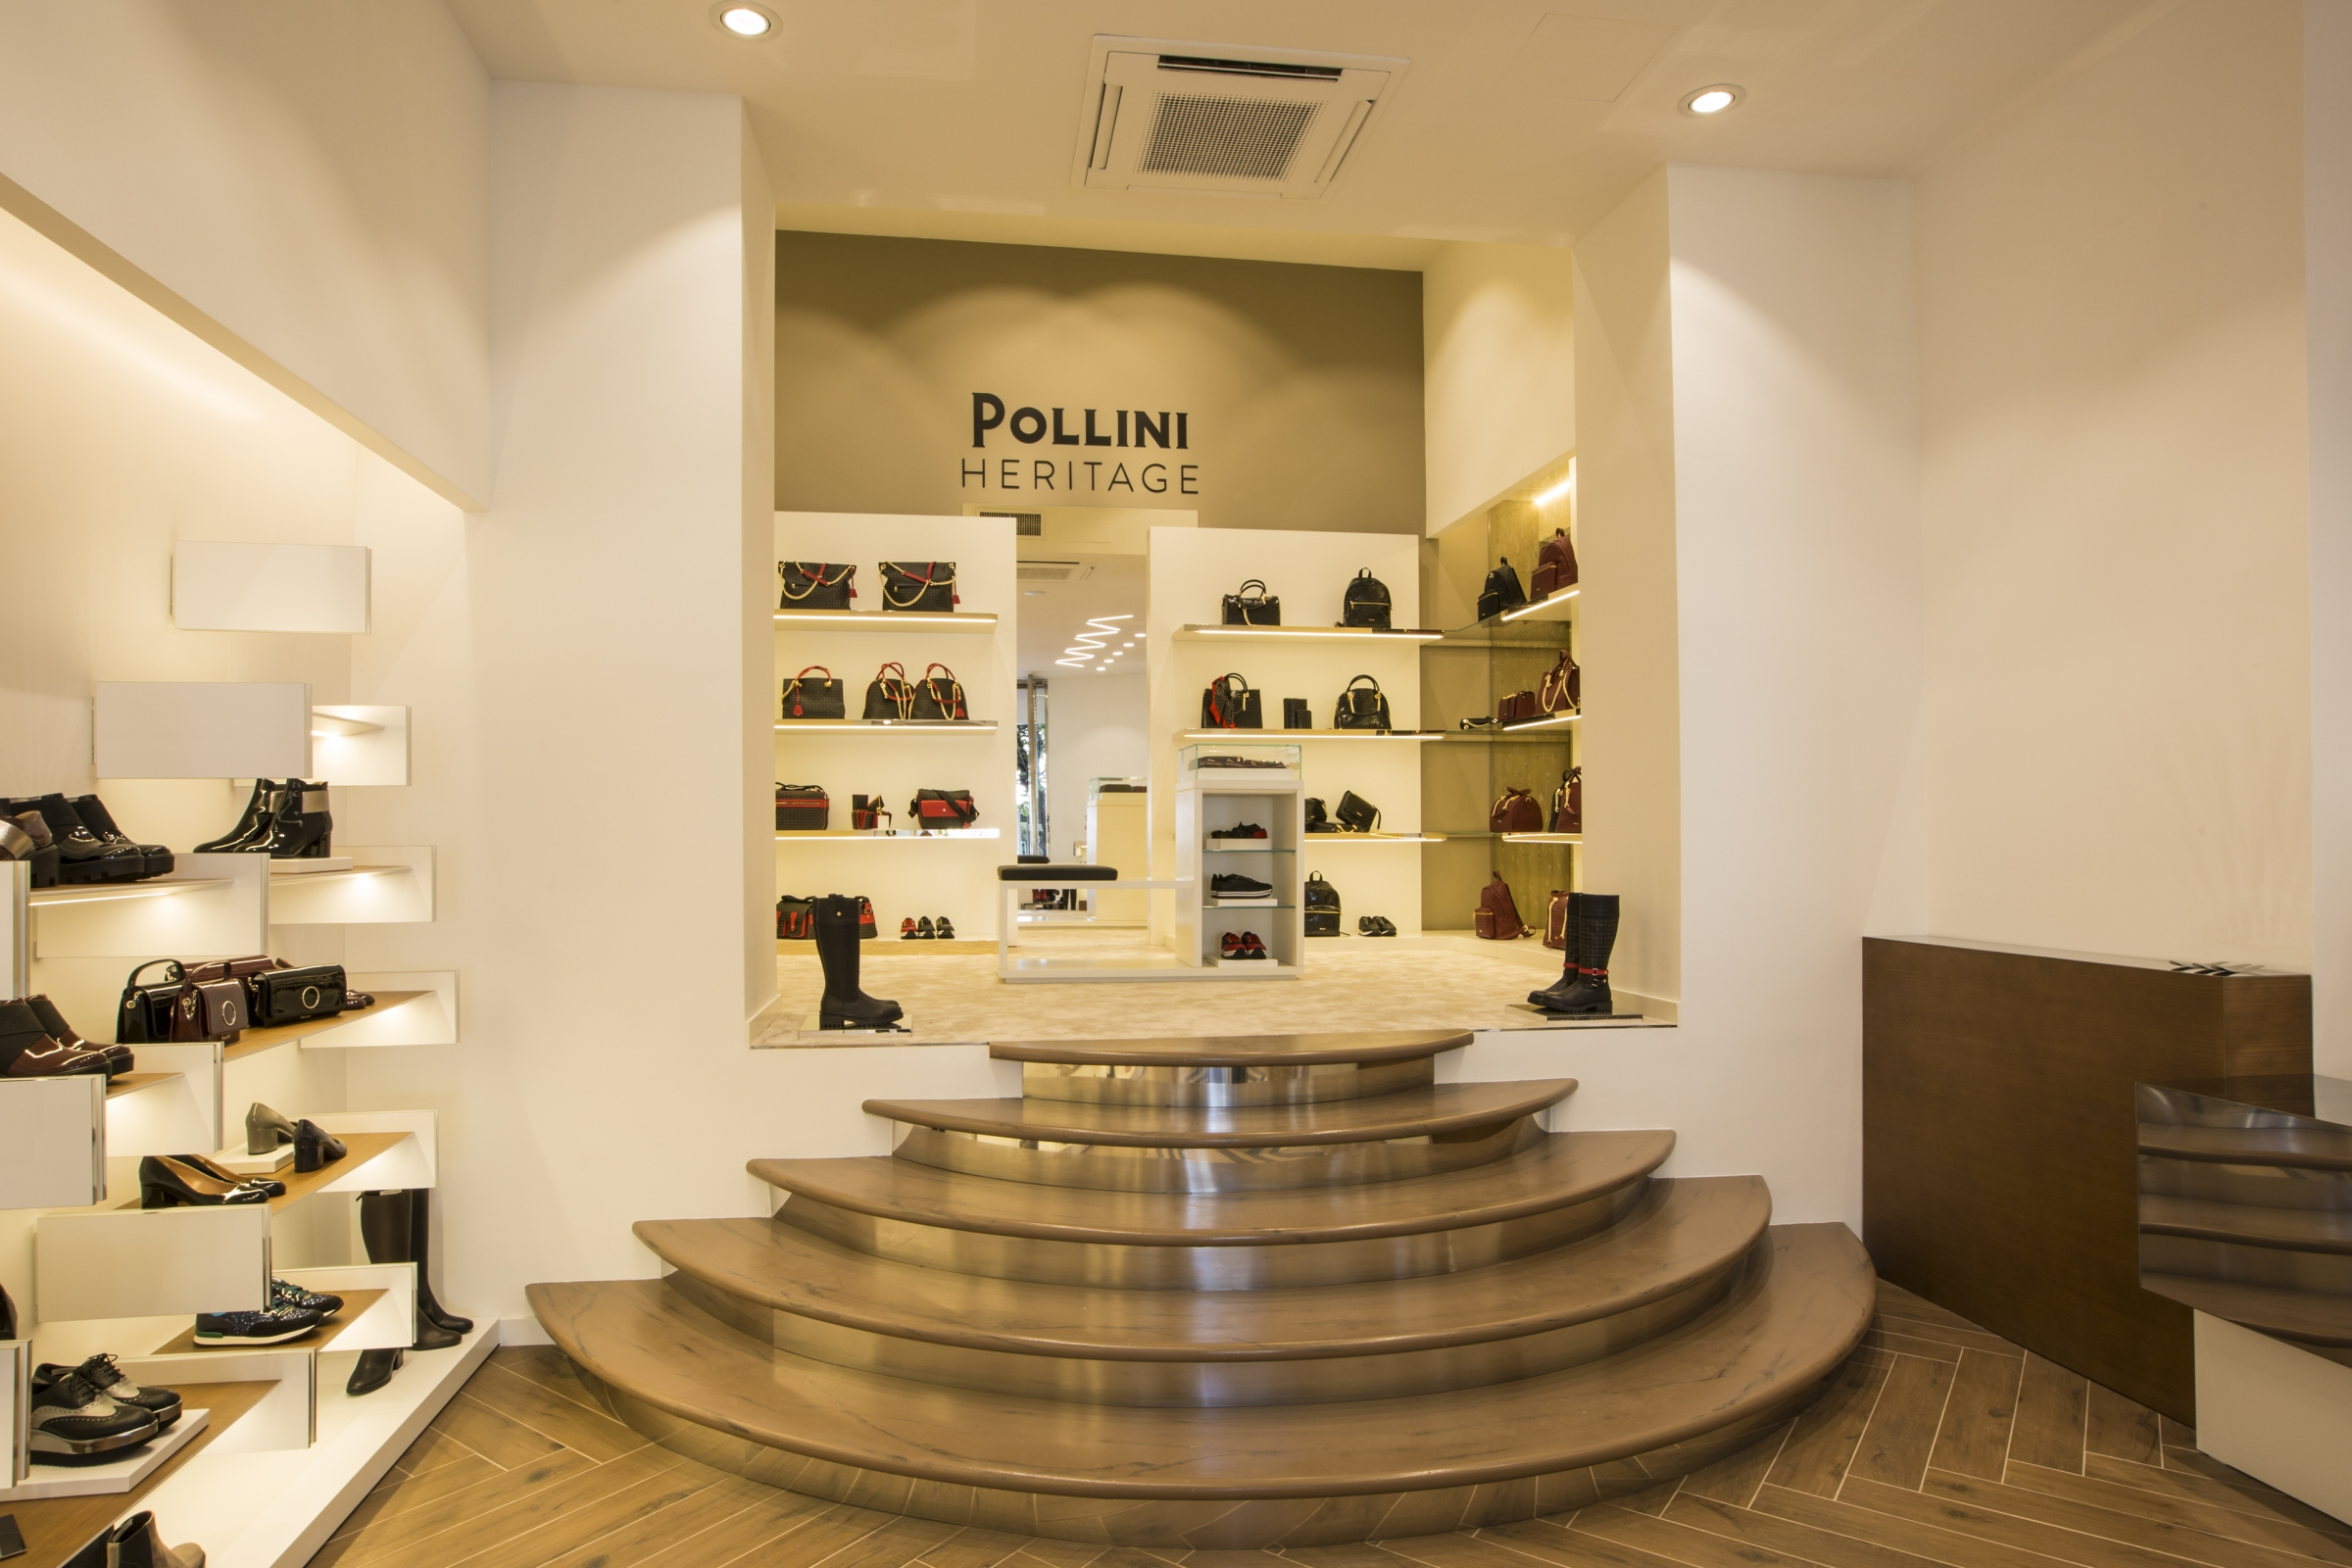 6f1f832bd0 ... Via Cola di Rienzo will be the first to have an exclusive area  dedicated to the Heritage collection, inspired by the iconic Pollini  monogram ...